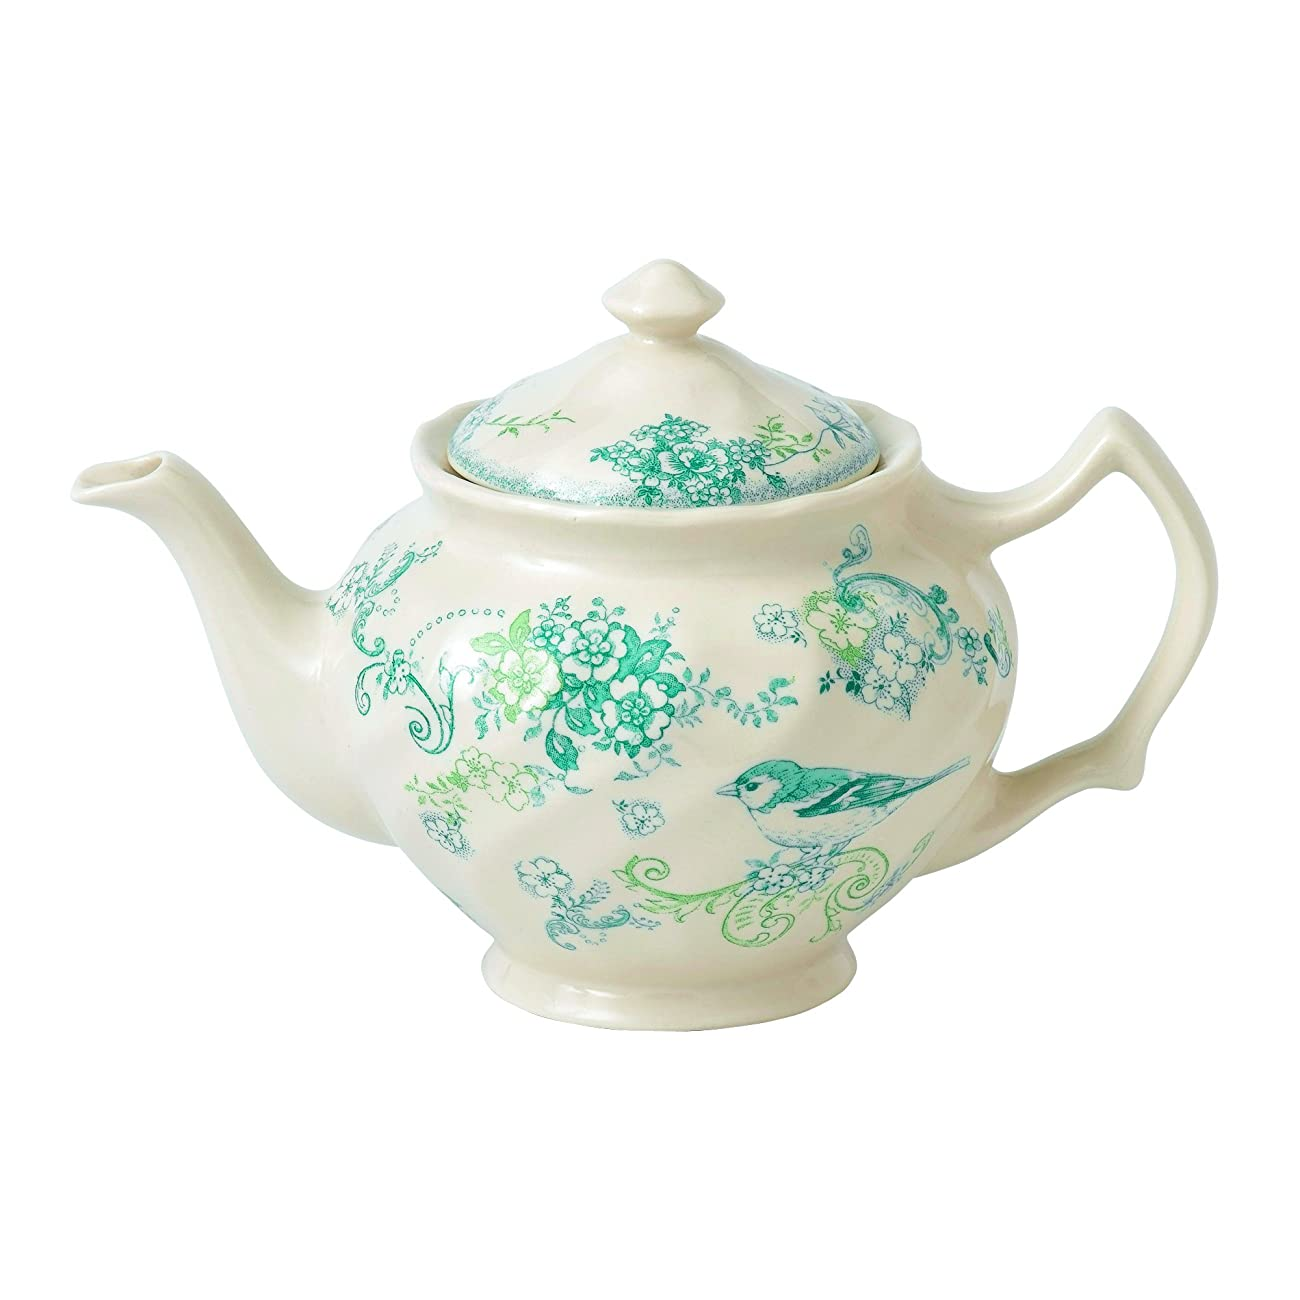 Johnson Brothers Vintage Charm Teapot 1.2 Ltr, 1.2 L, Multicolored 0